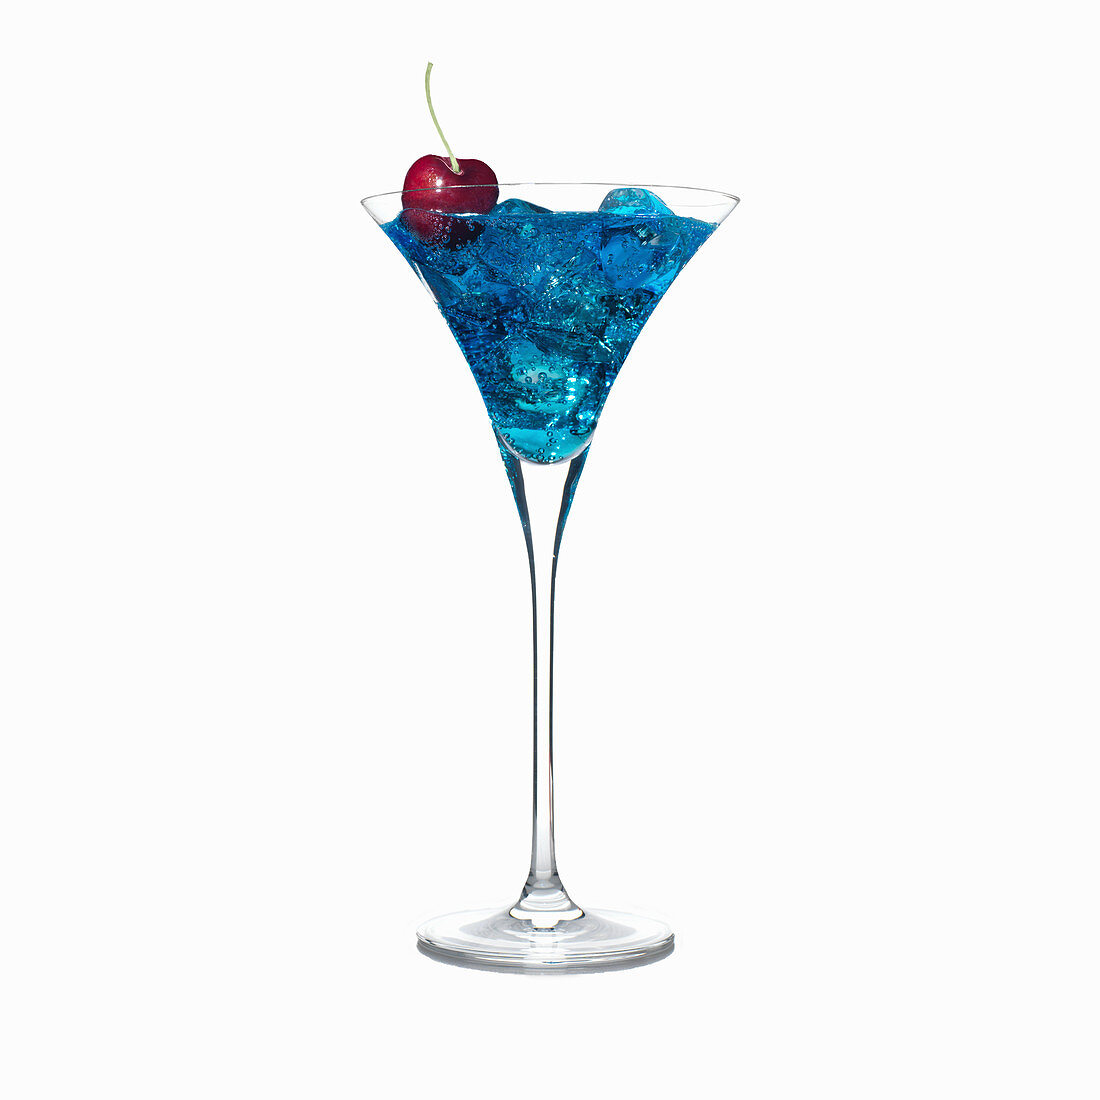 Blue cocktail in martini glass with ice cubes and a cherry garnish